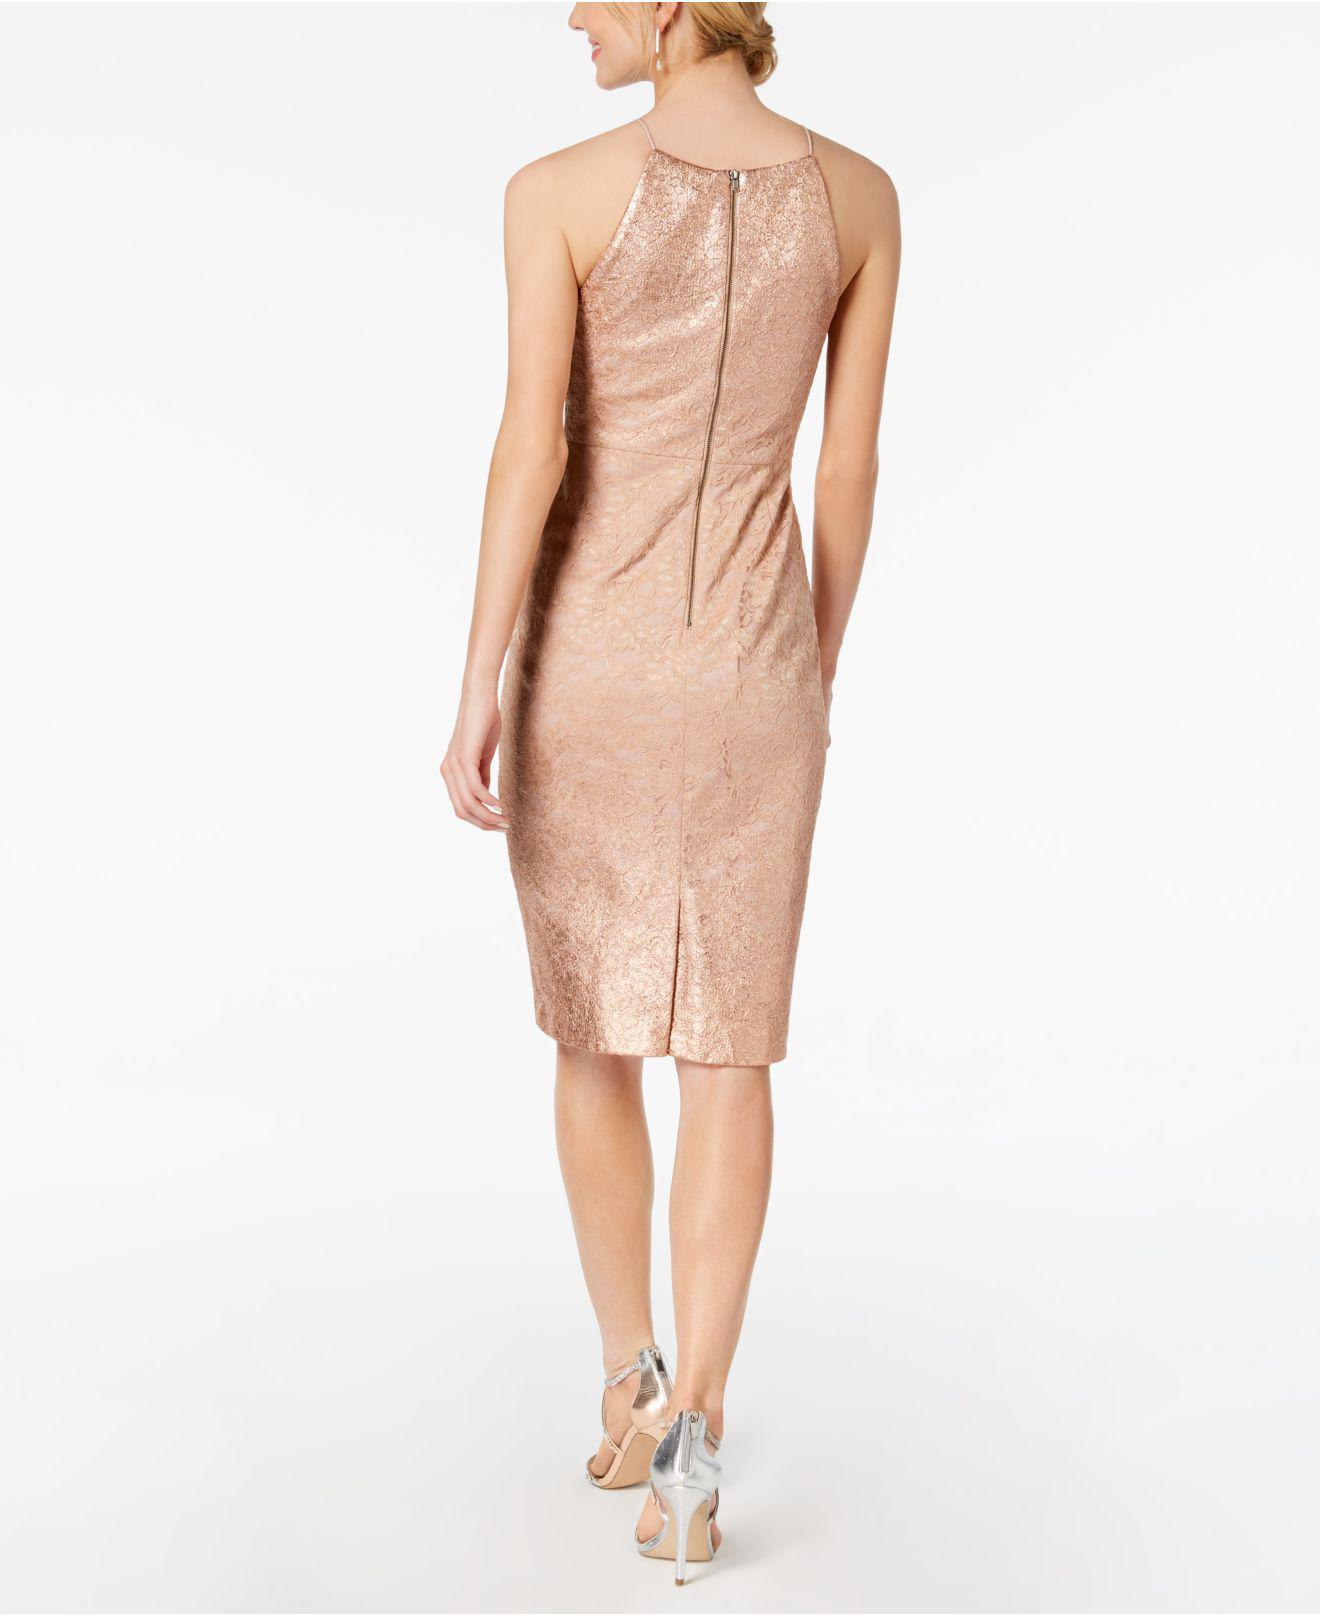 927b5295 Gallery. Previously sold at: Macy's, Nordstrom · Women's Sheath Dresses  Women's Wedding Guest Dresses Women's Adrianna Papell Lace Dress ...